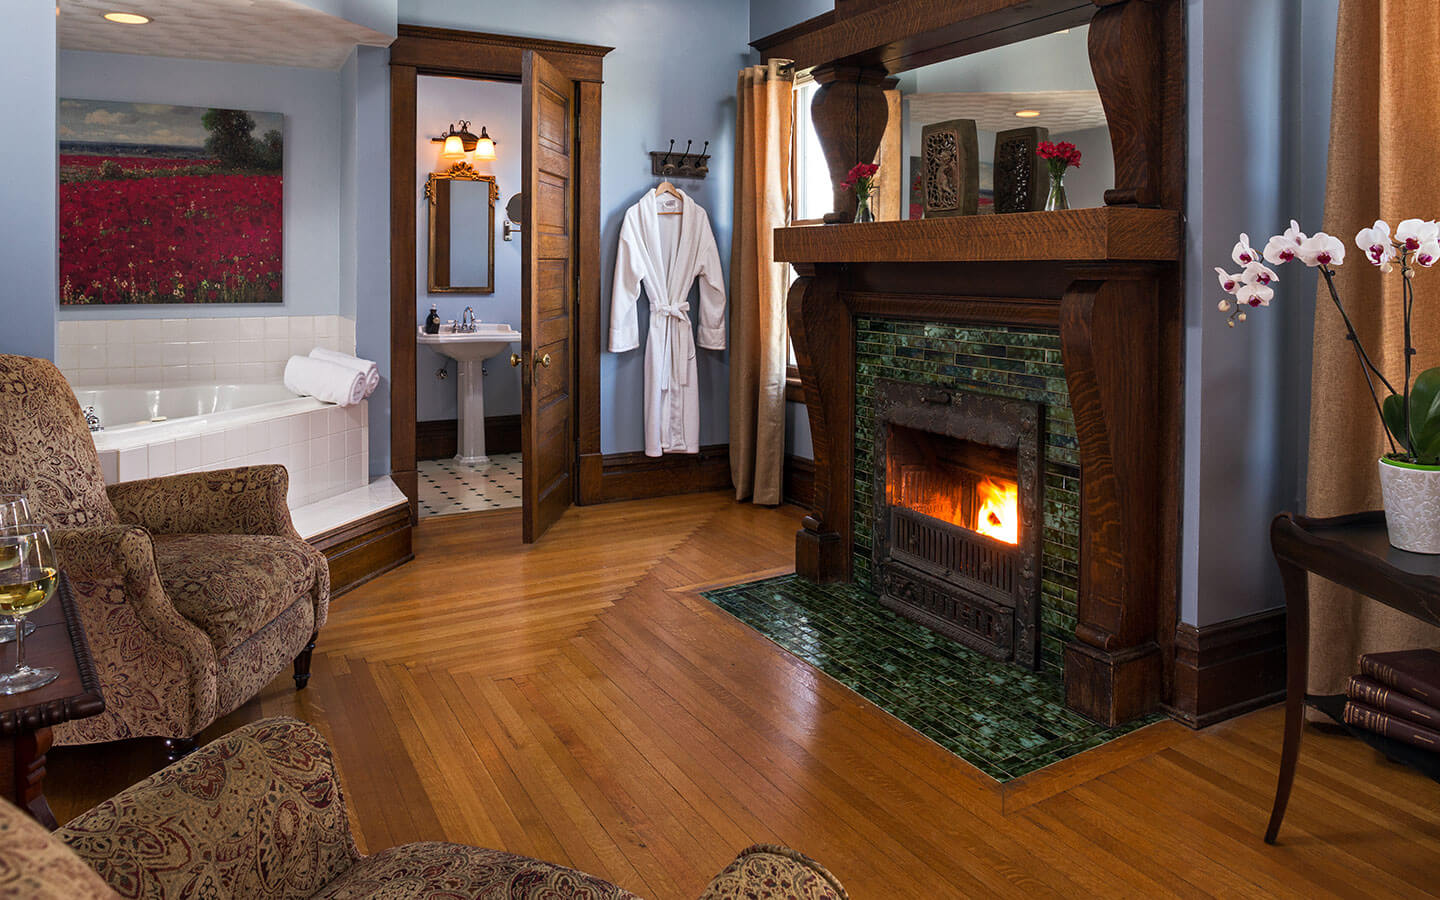 Kingdom Suite fireplace and whirlpool tub